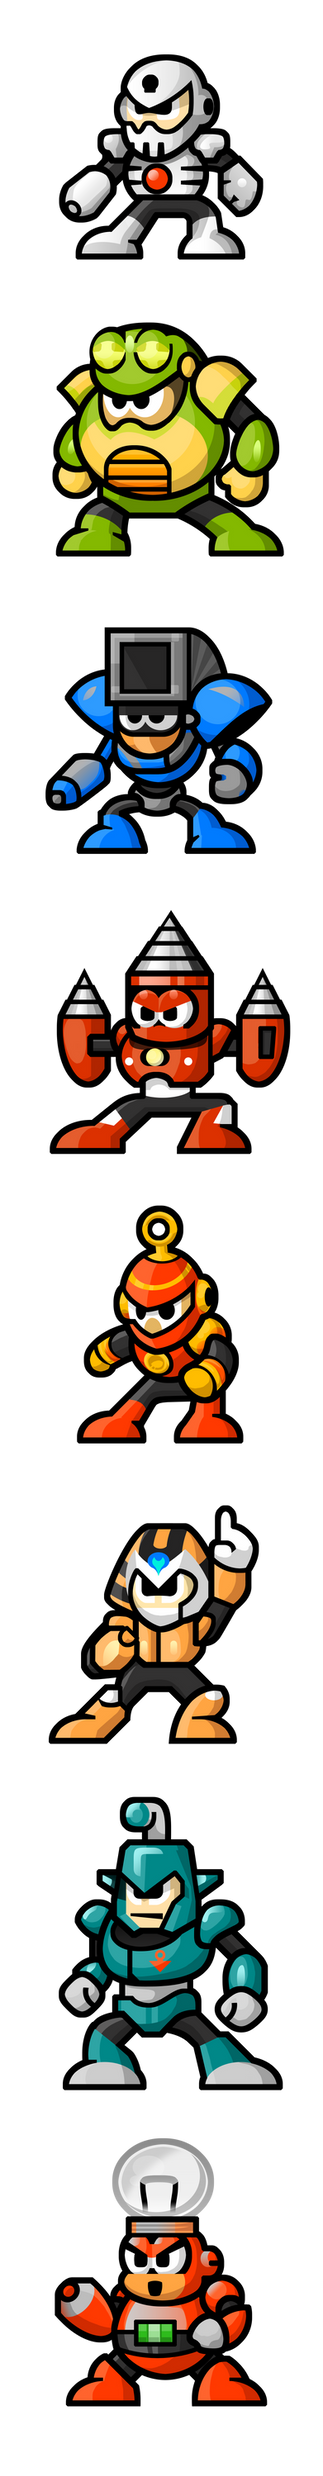 MegaMan 'Sprites'-Bosses of 4 by WaneBlade